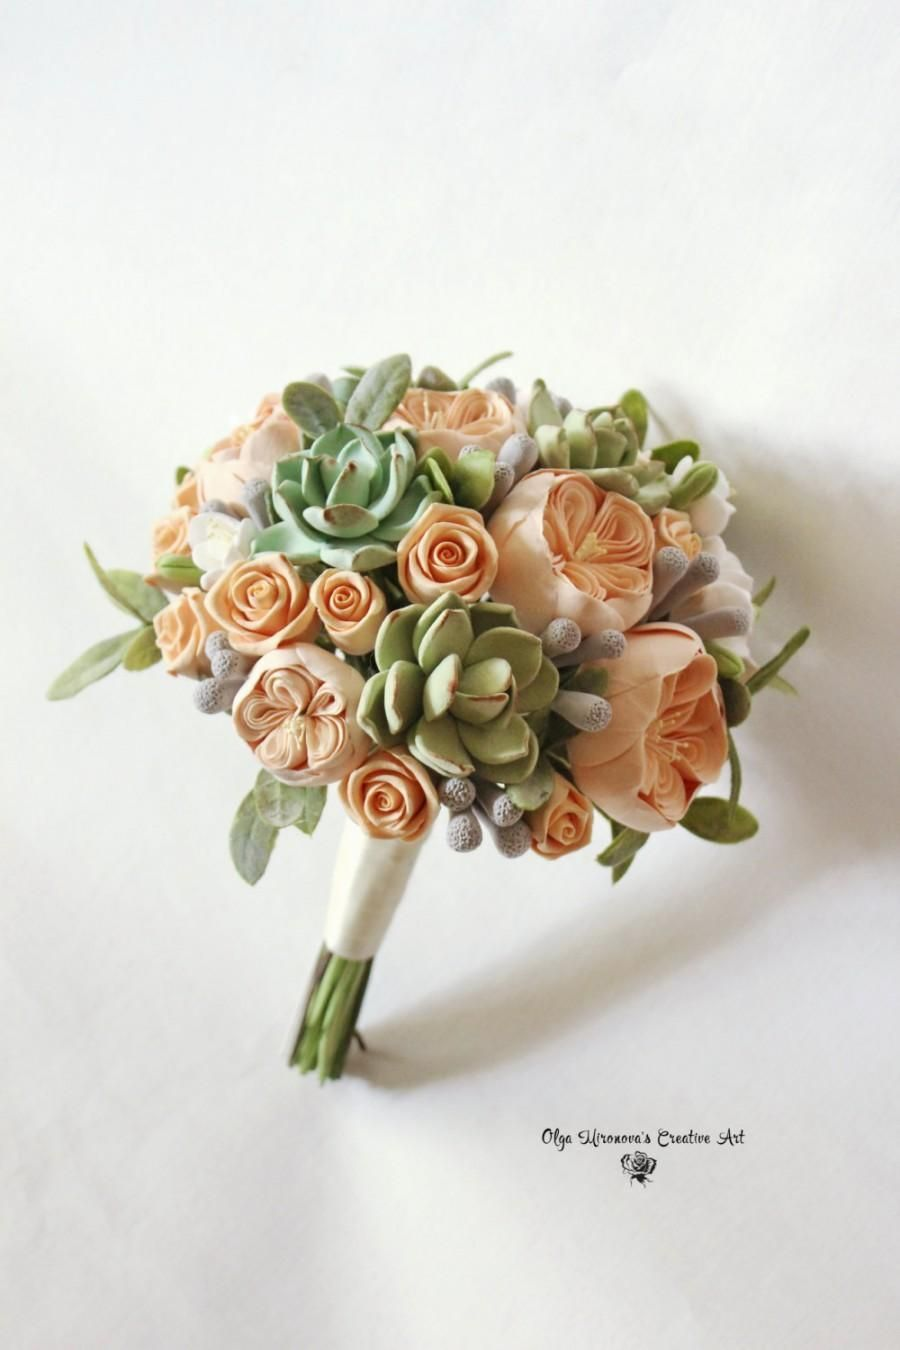 choose best wedding throw bouquet for your wedding 2 - Choose Best Wedding Throw Bouquet for Your Wedding